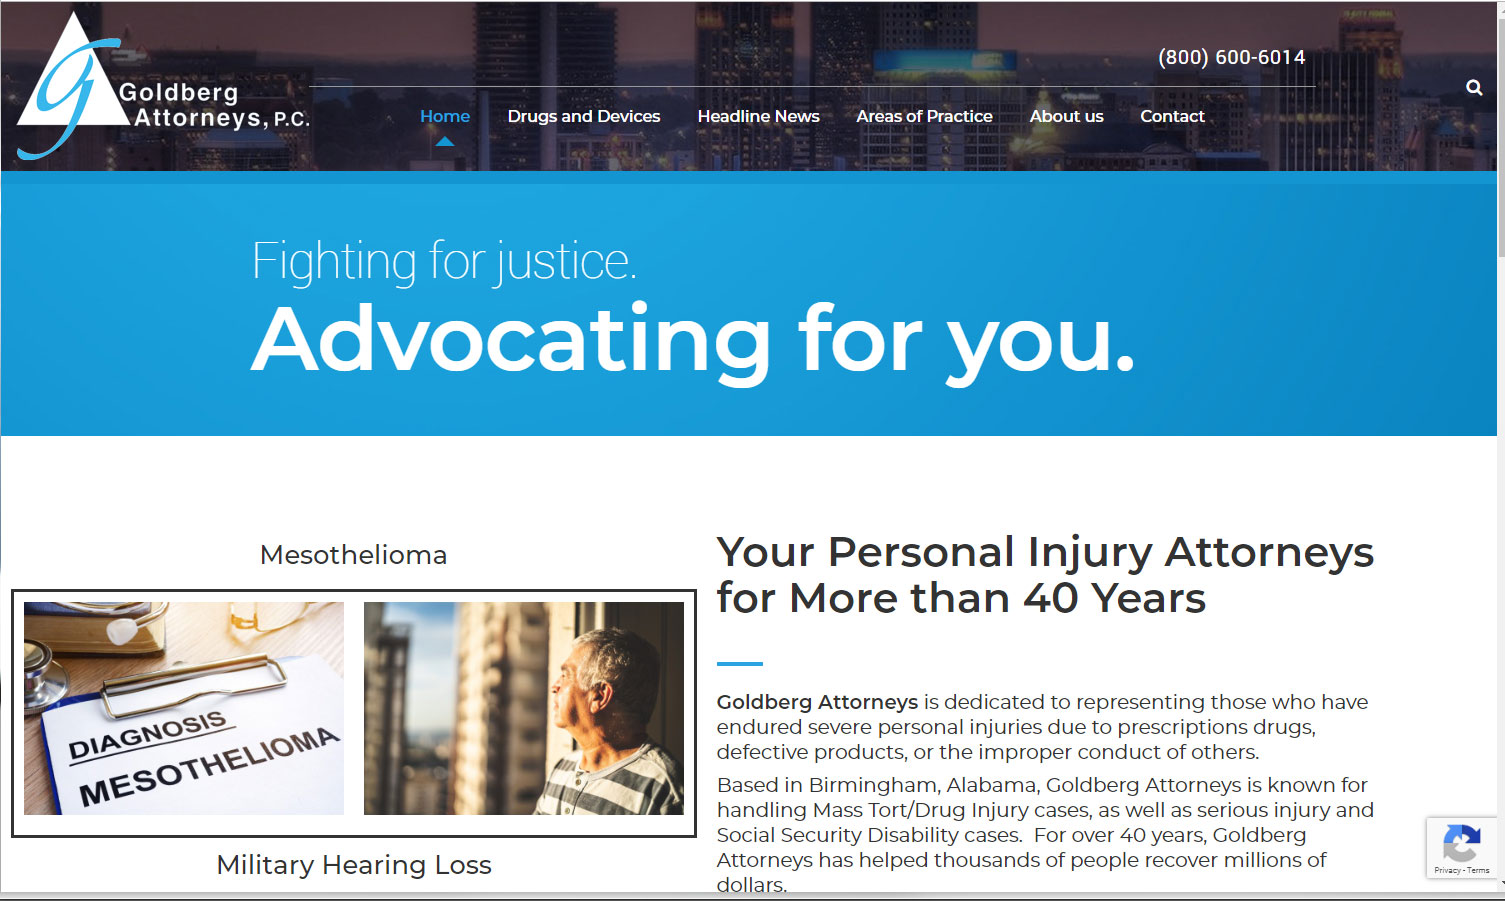 Homepage of Goldberg Attorneys